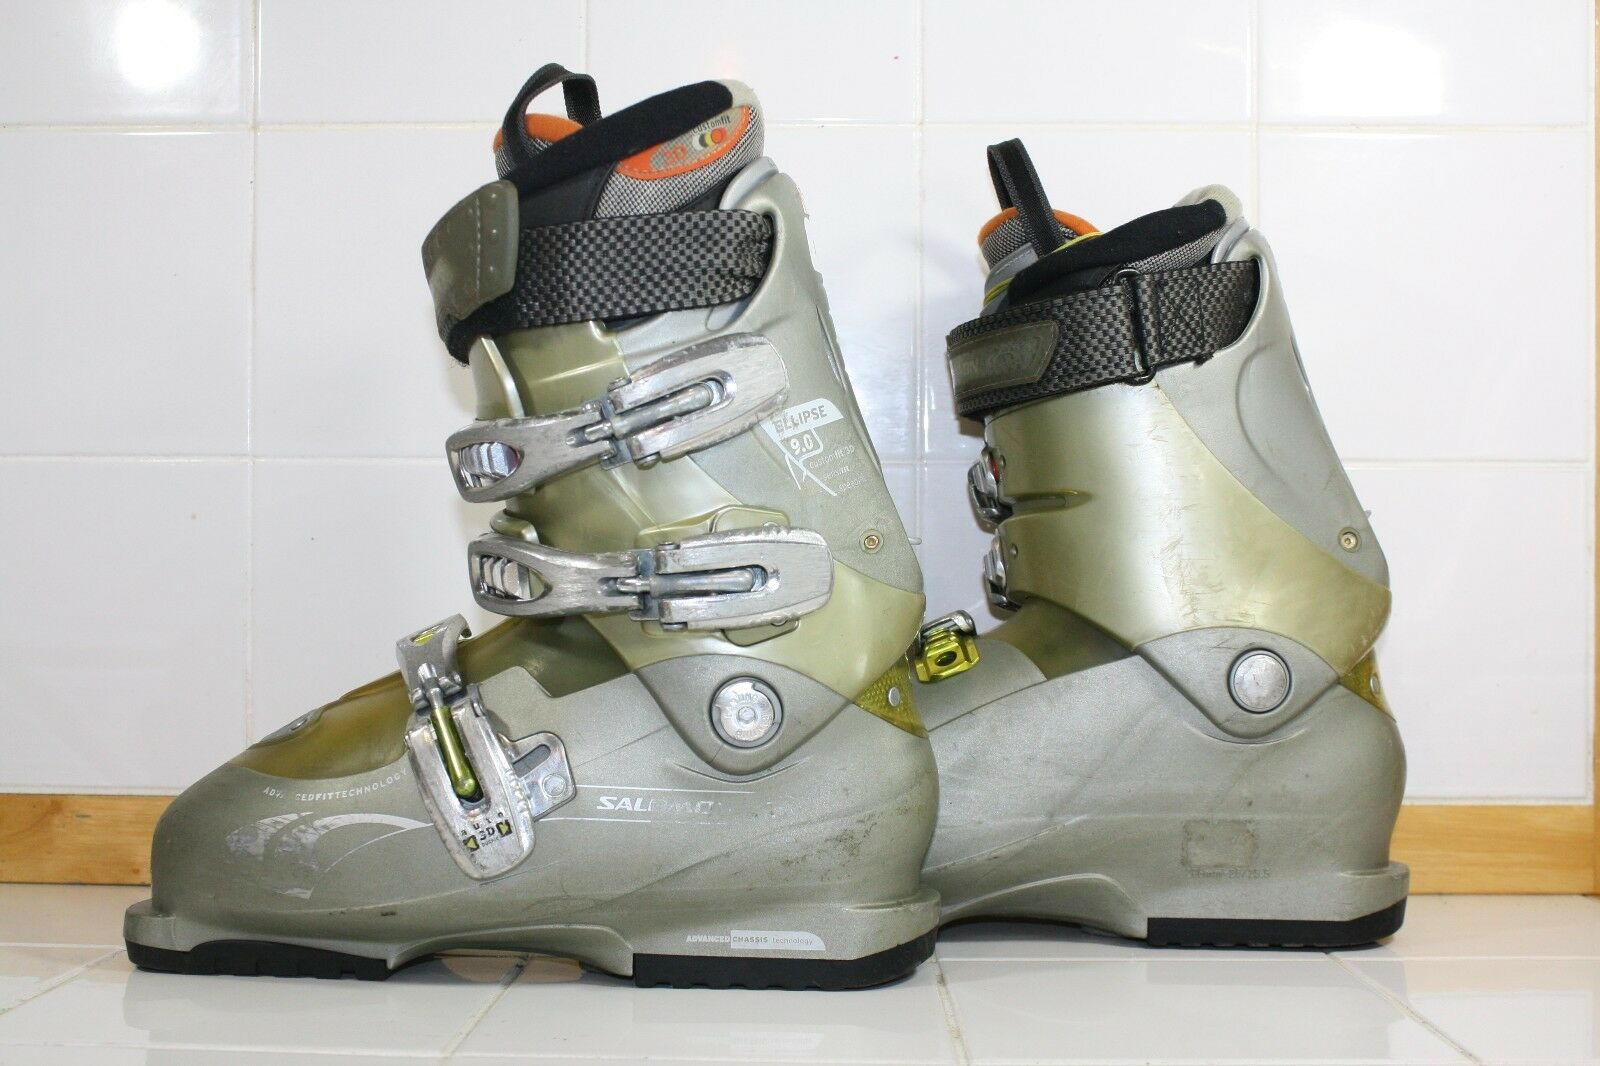 Salomon Ellipse Ski Boots 25.0 Mondo - Lot 1240